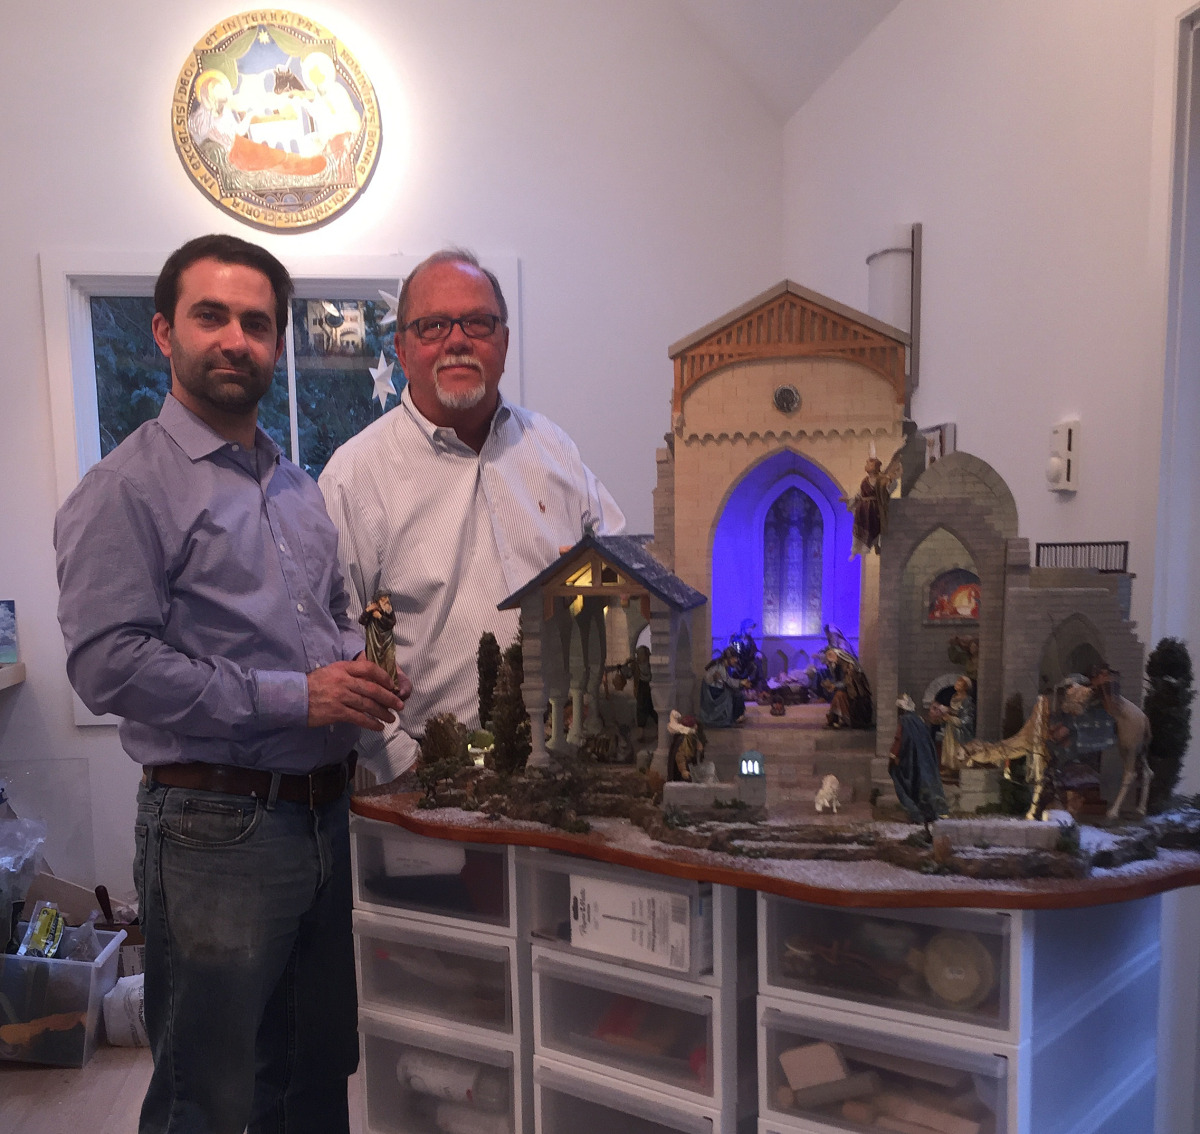 A.J. DiAntonio and Michael Stumpf with the completed Glencairn Nativity, in the Navidad Nativities workshop in Bucks County (2015).